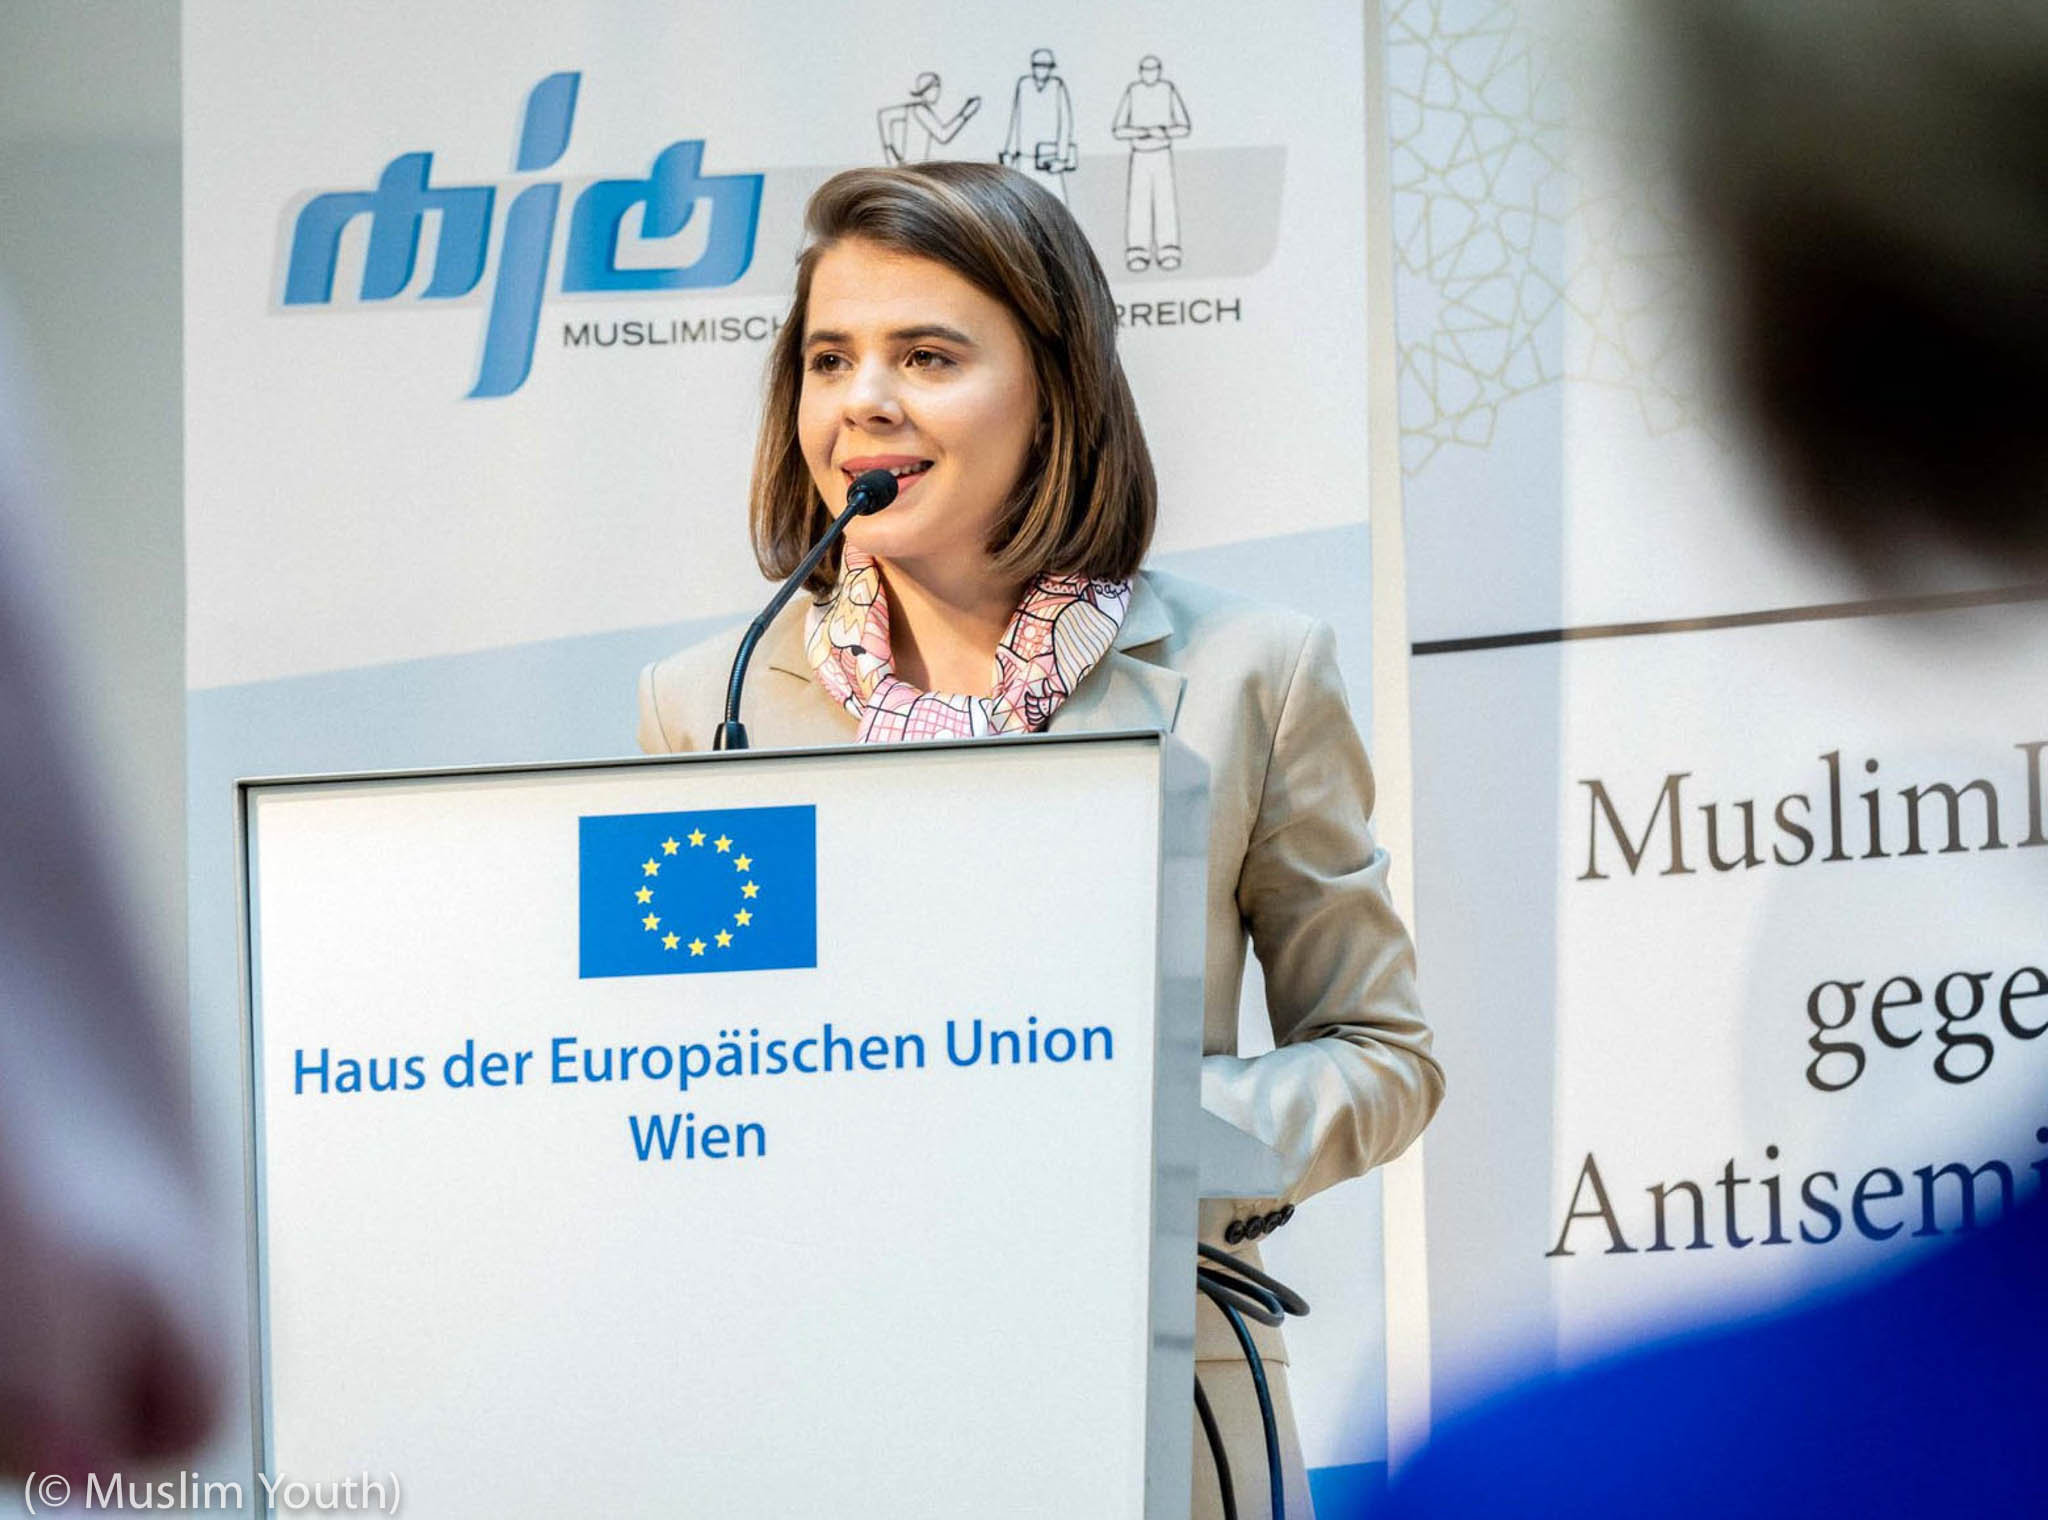 Woman at lectern with microphone (© Muslim Youth)